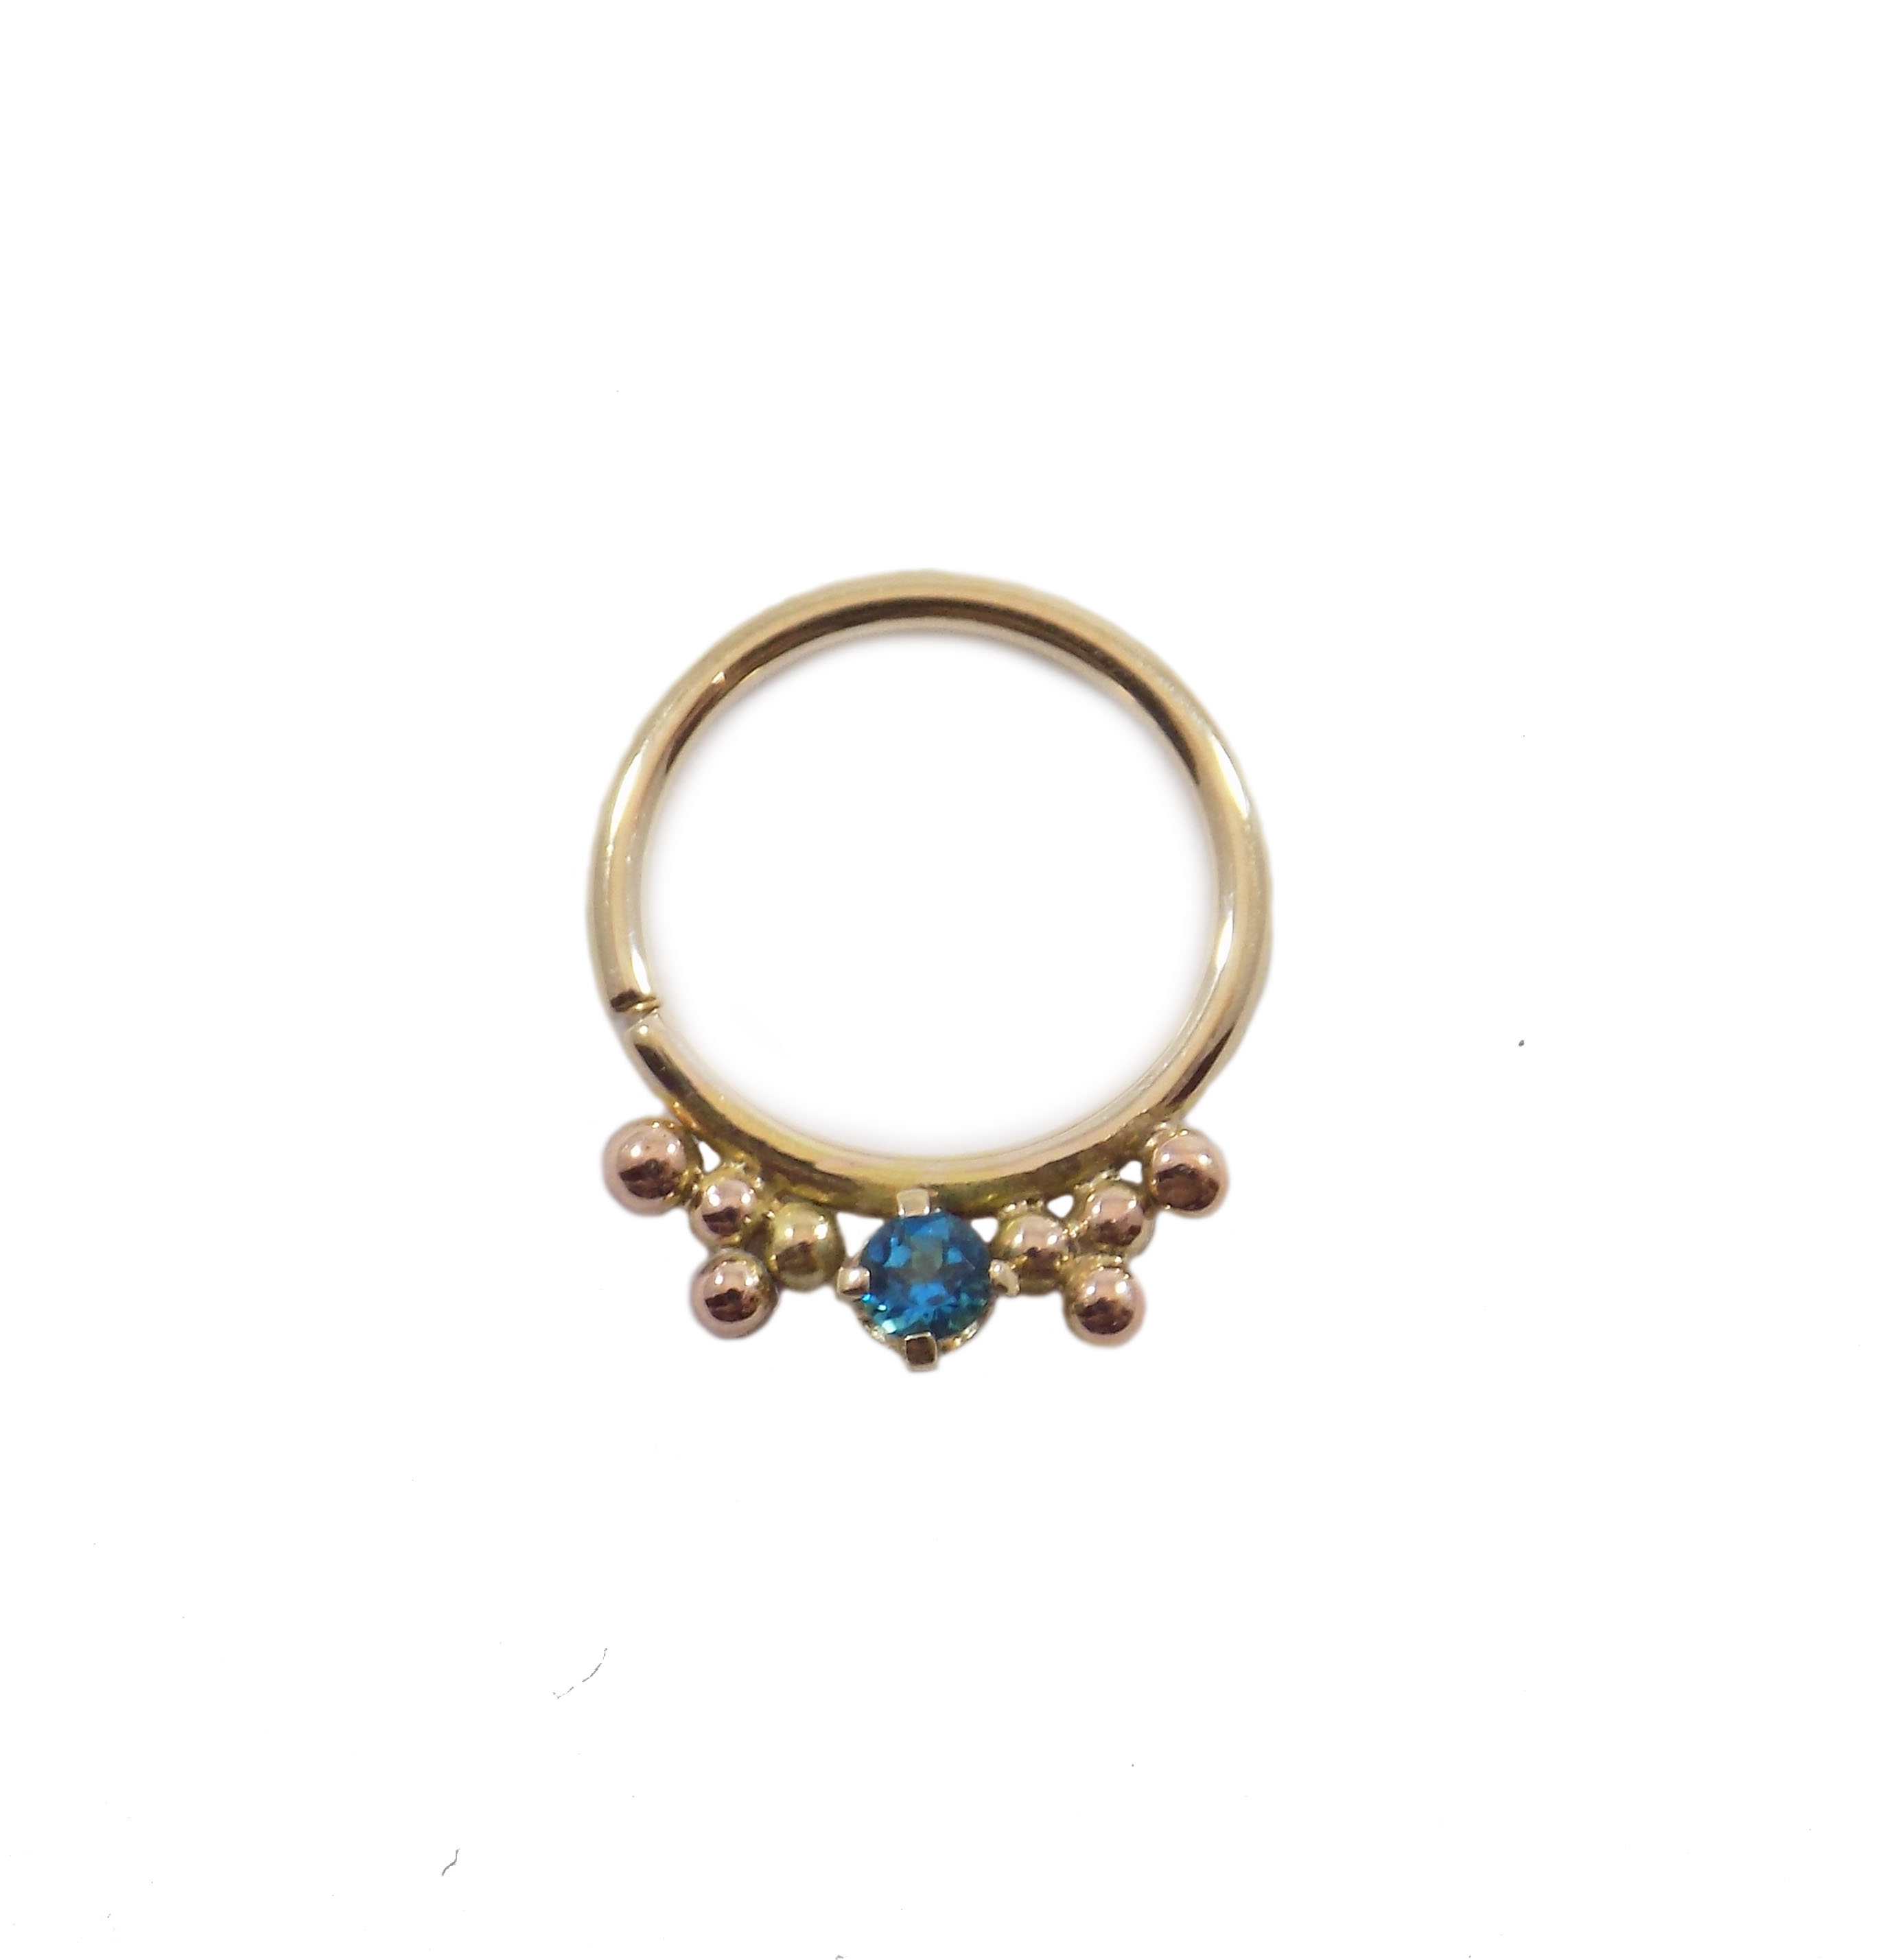 topaz blue categories identity goddess piercing clickers product body beaded bluebeadedring rings ring category triplet